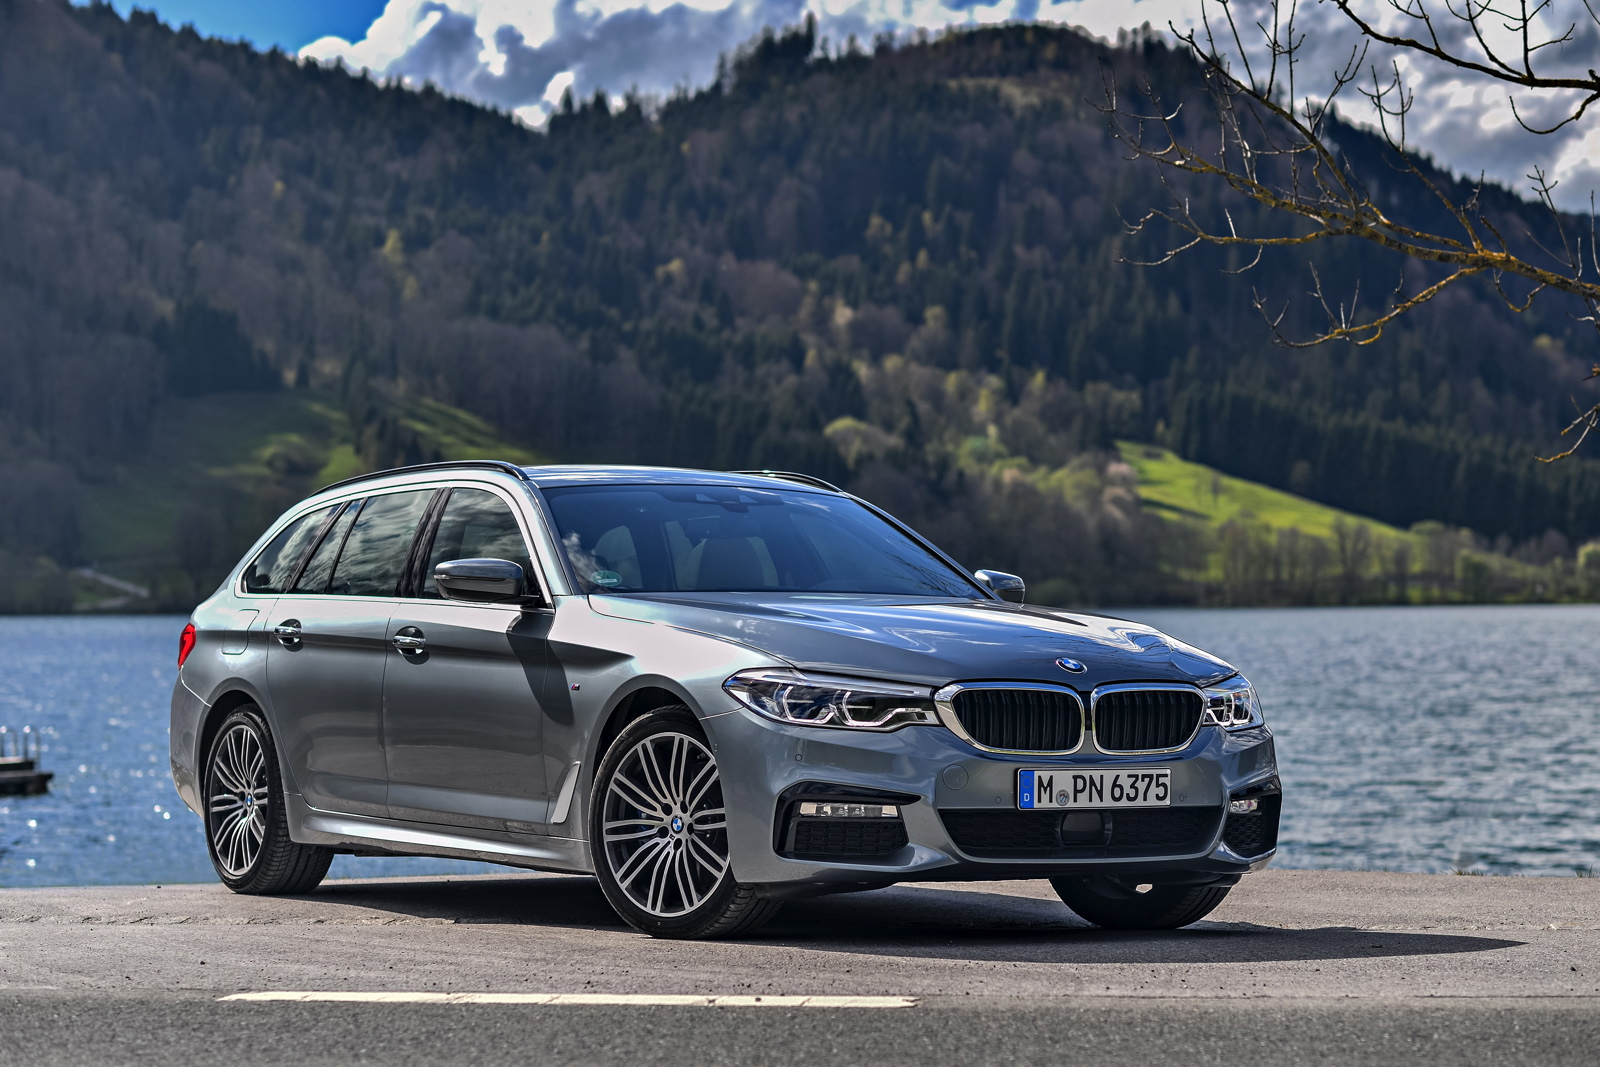 Bmw 5 Series Touring Xdrive Top Gear Reviews The Bmw 5 Series Touring